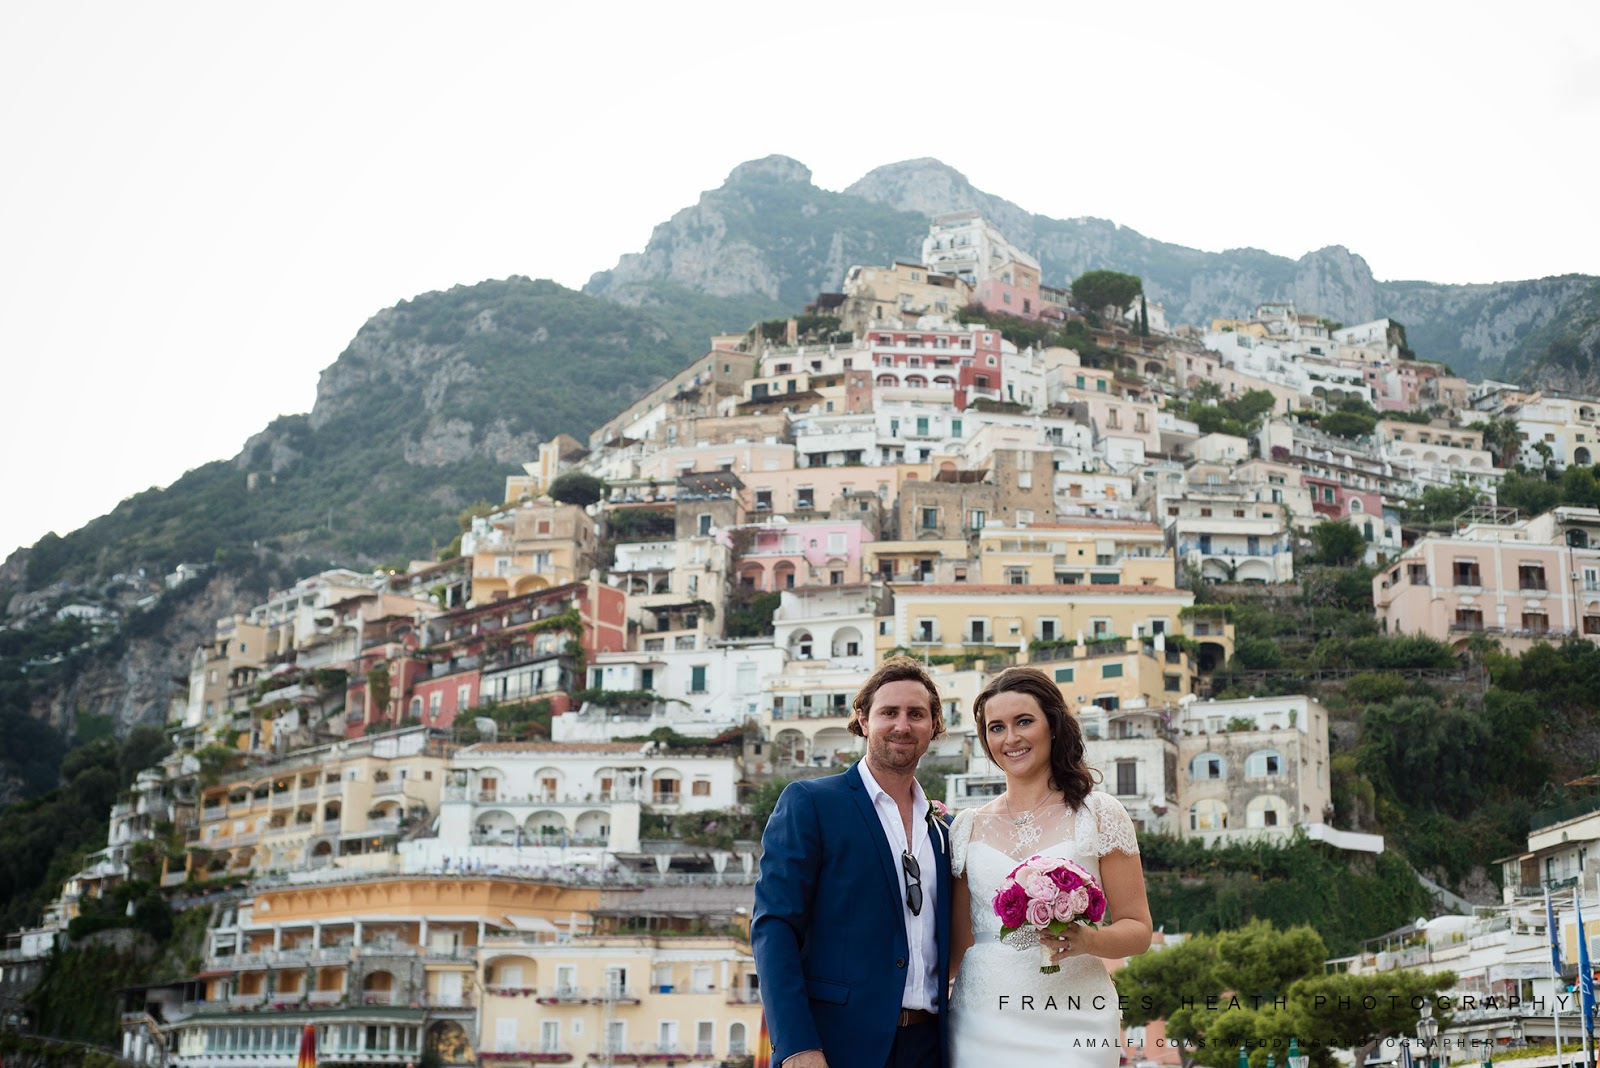 Wedding portraits in Positano